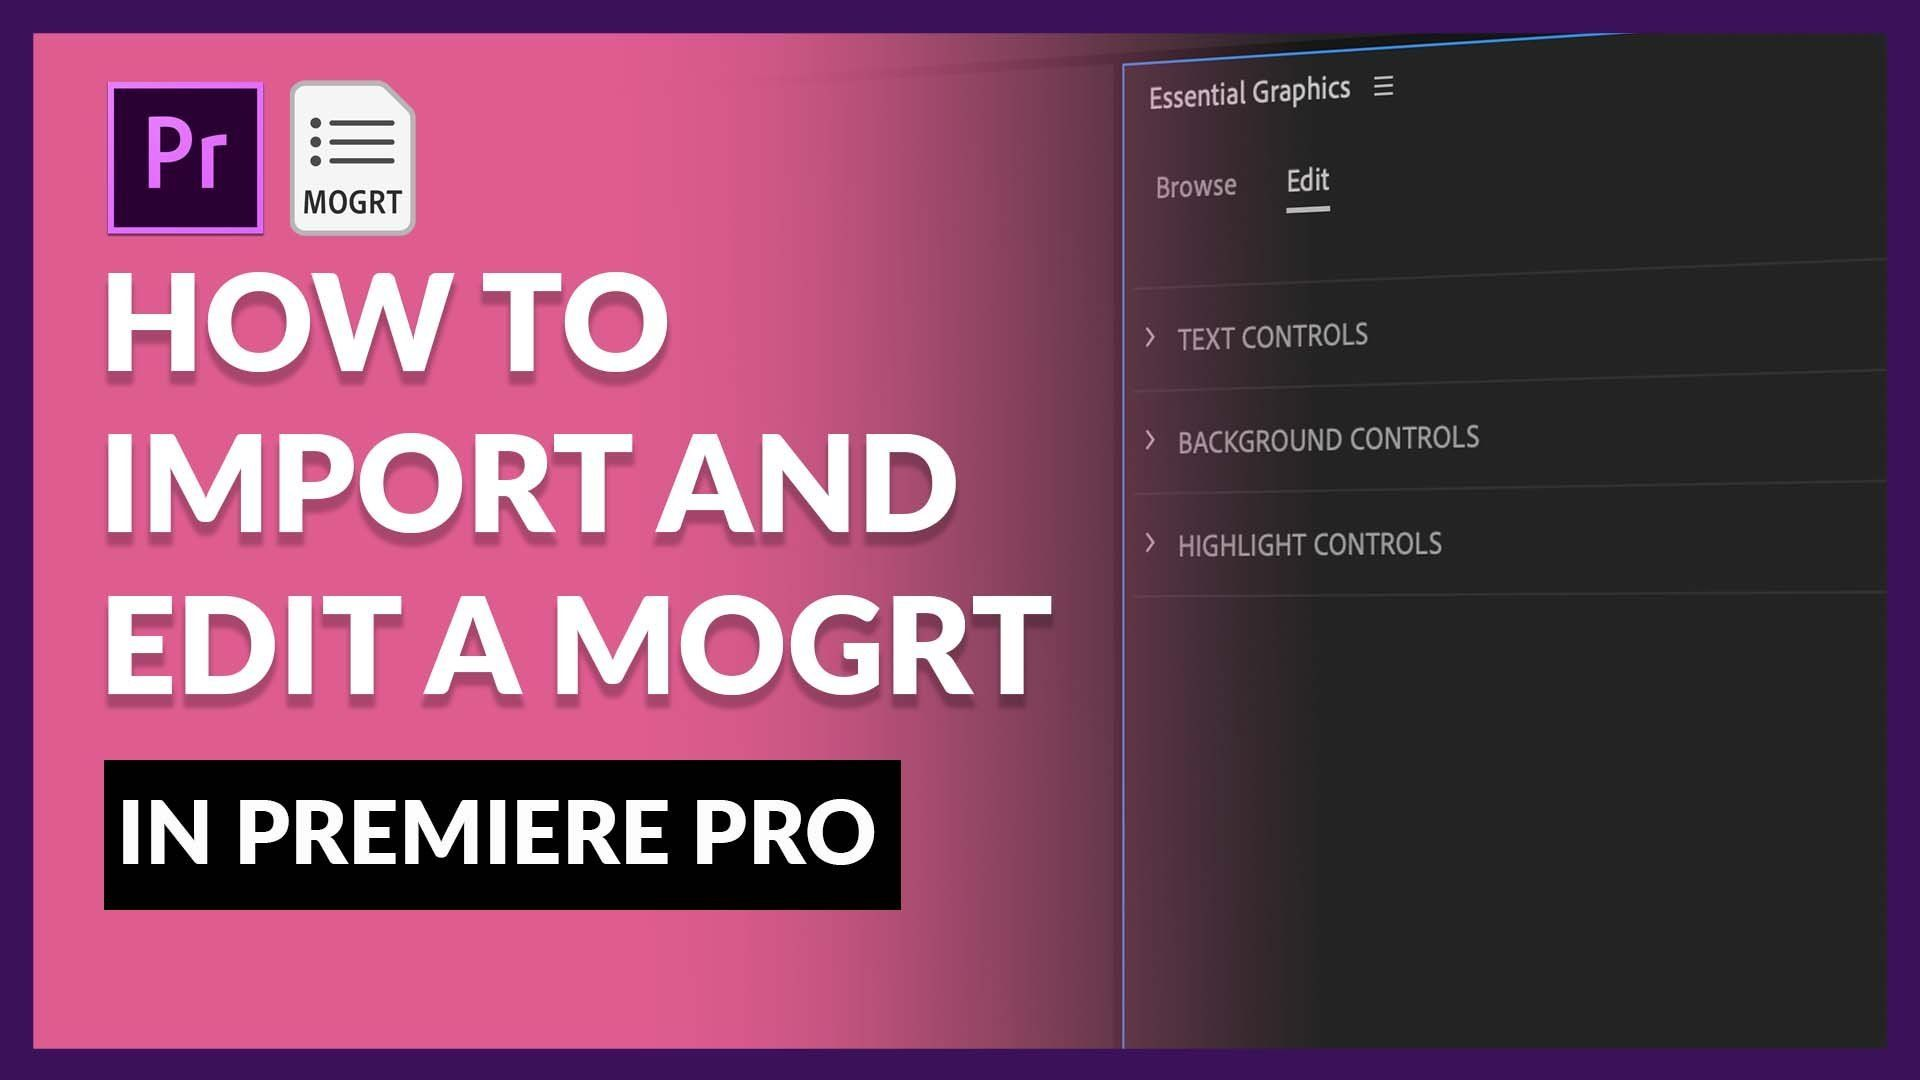 How To Import And Edit A Mogrt In Premiere Pro Motion Graphics Templates Are An Easy Way To Add Professionally Made Intros And Animated Graphics To Any Video C